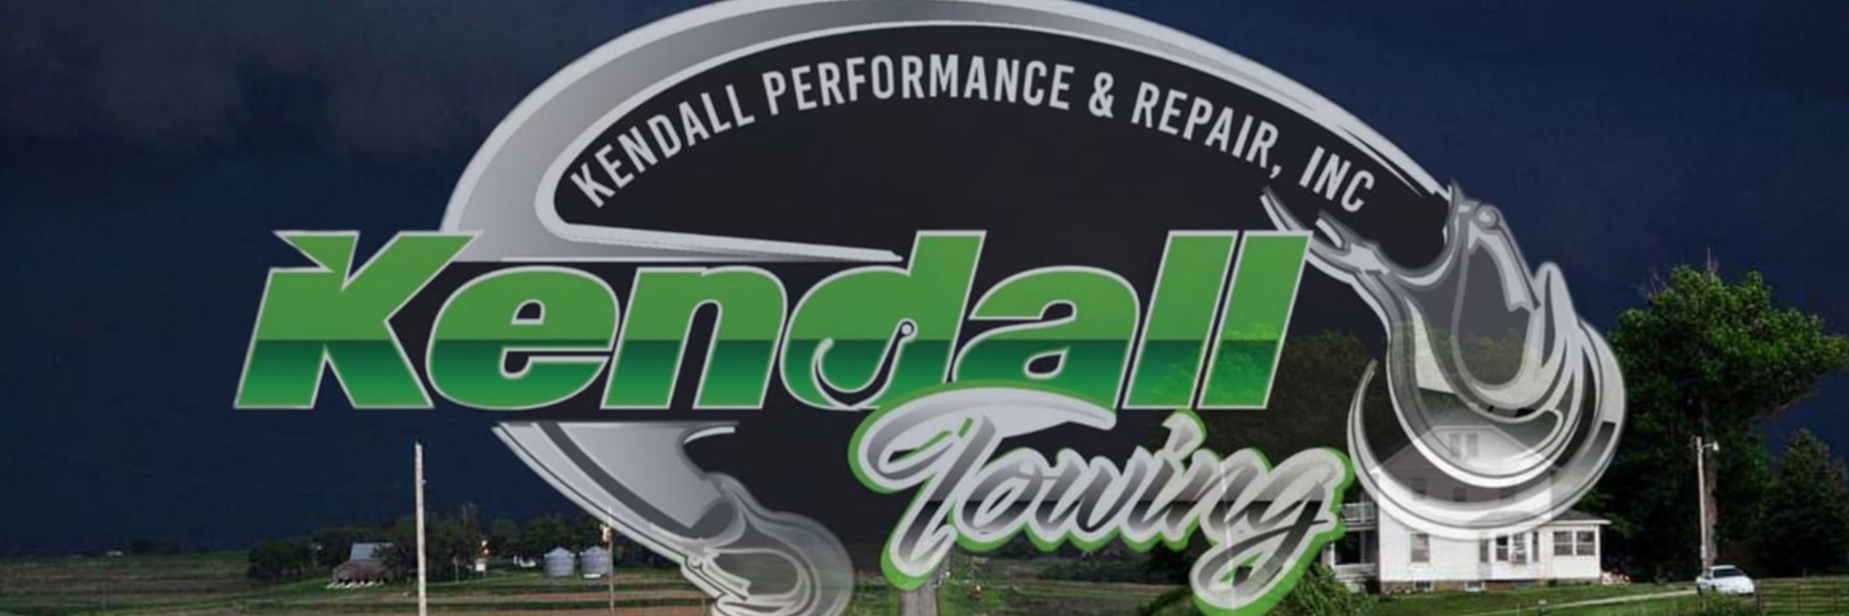 Kendall Towing Towing.com Profile Banner